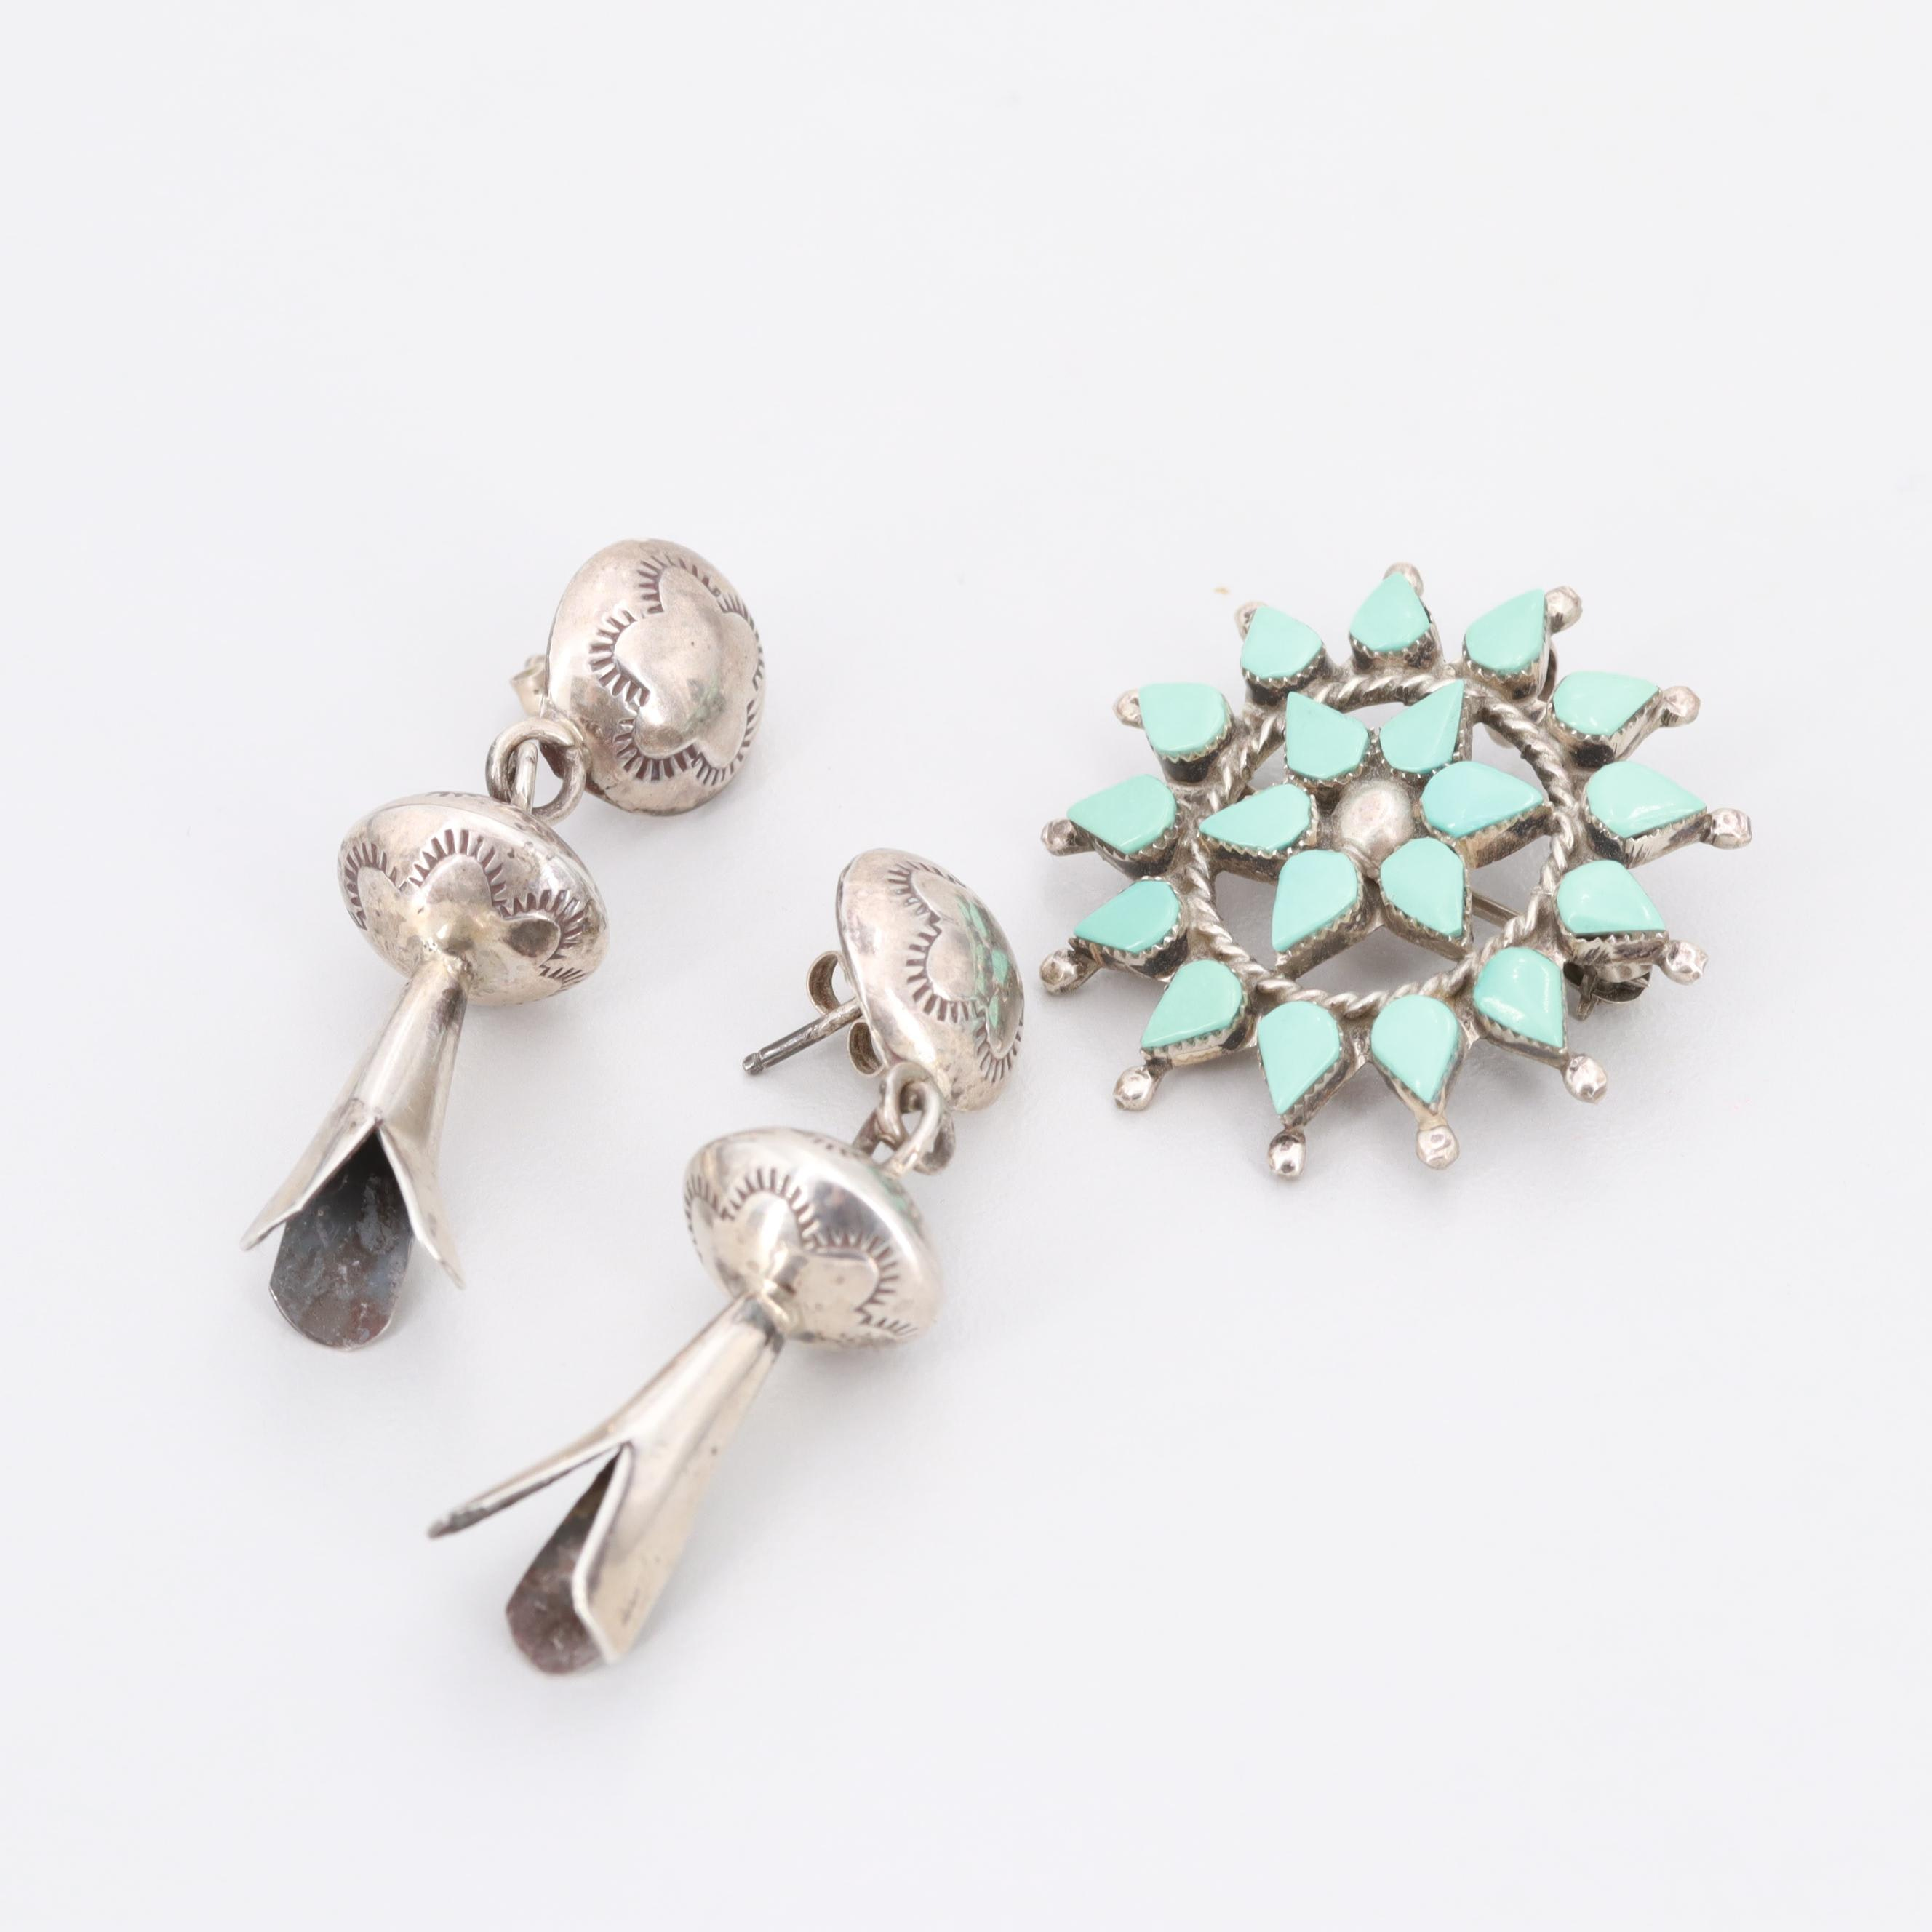 Southwestern Style Sterling Silver Turquoise Converter Brooch and Earrings